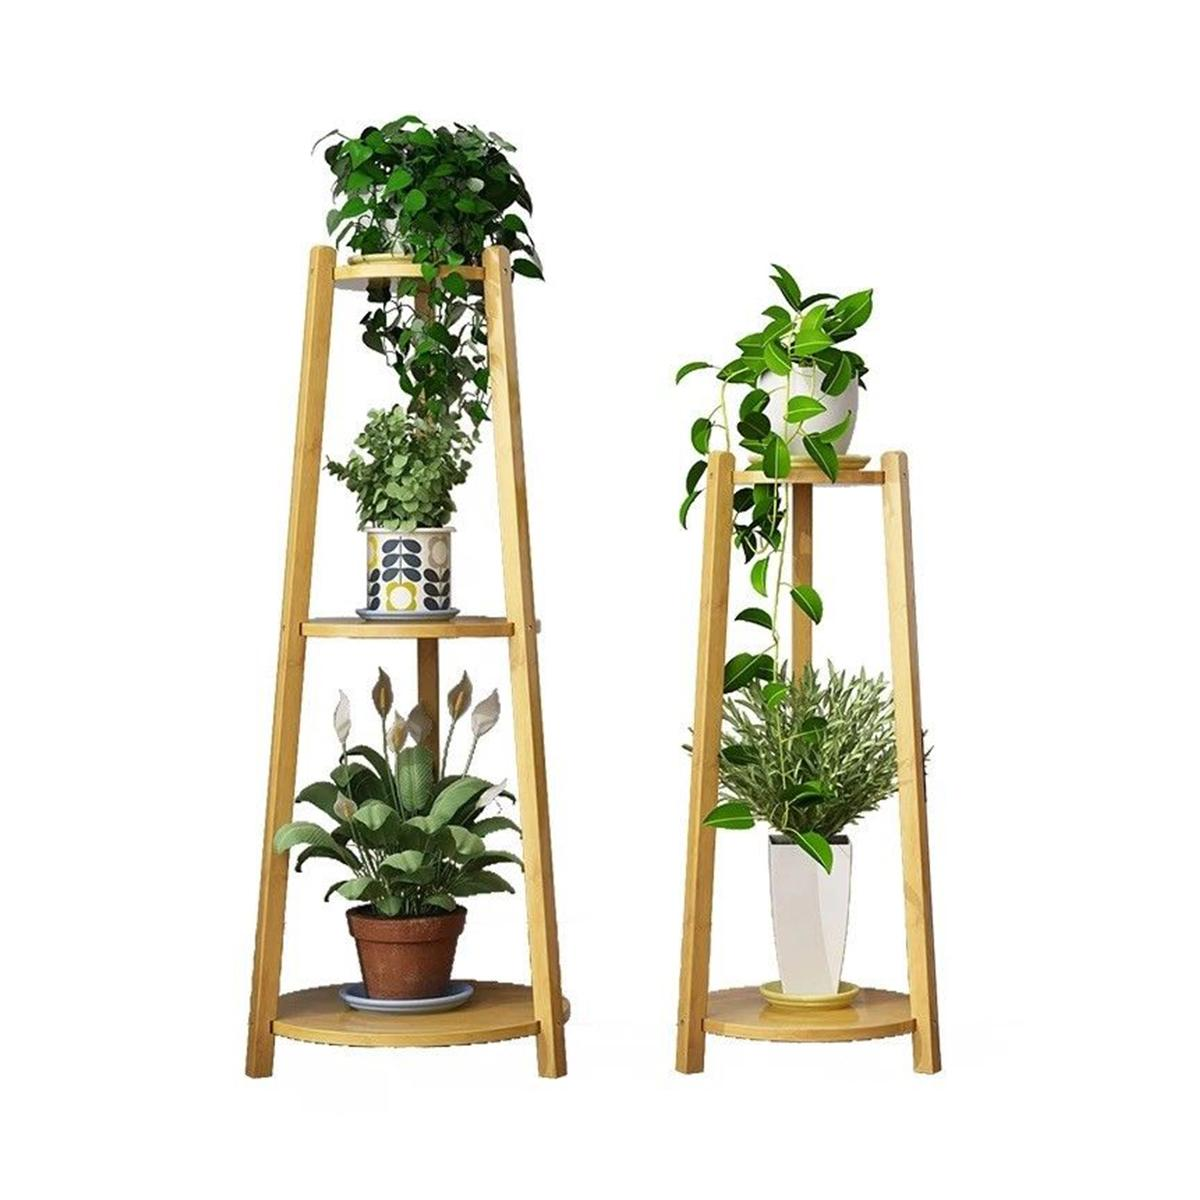 Garden Plant Stand Shelf Flower Pot Rack Simple Indoor Coffee Bar Balcony Home furniture Bamboo Multi-use Shelf Multi-layer